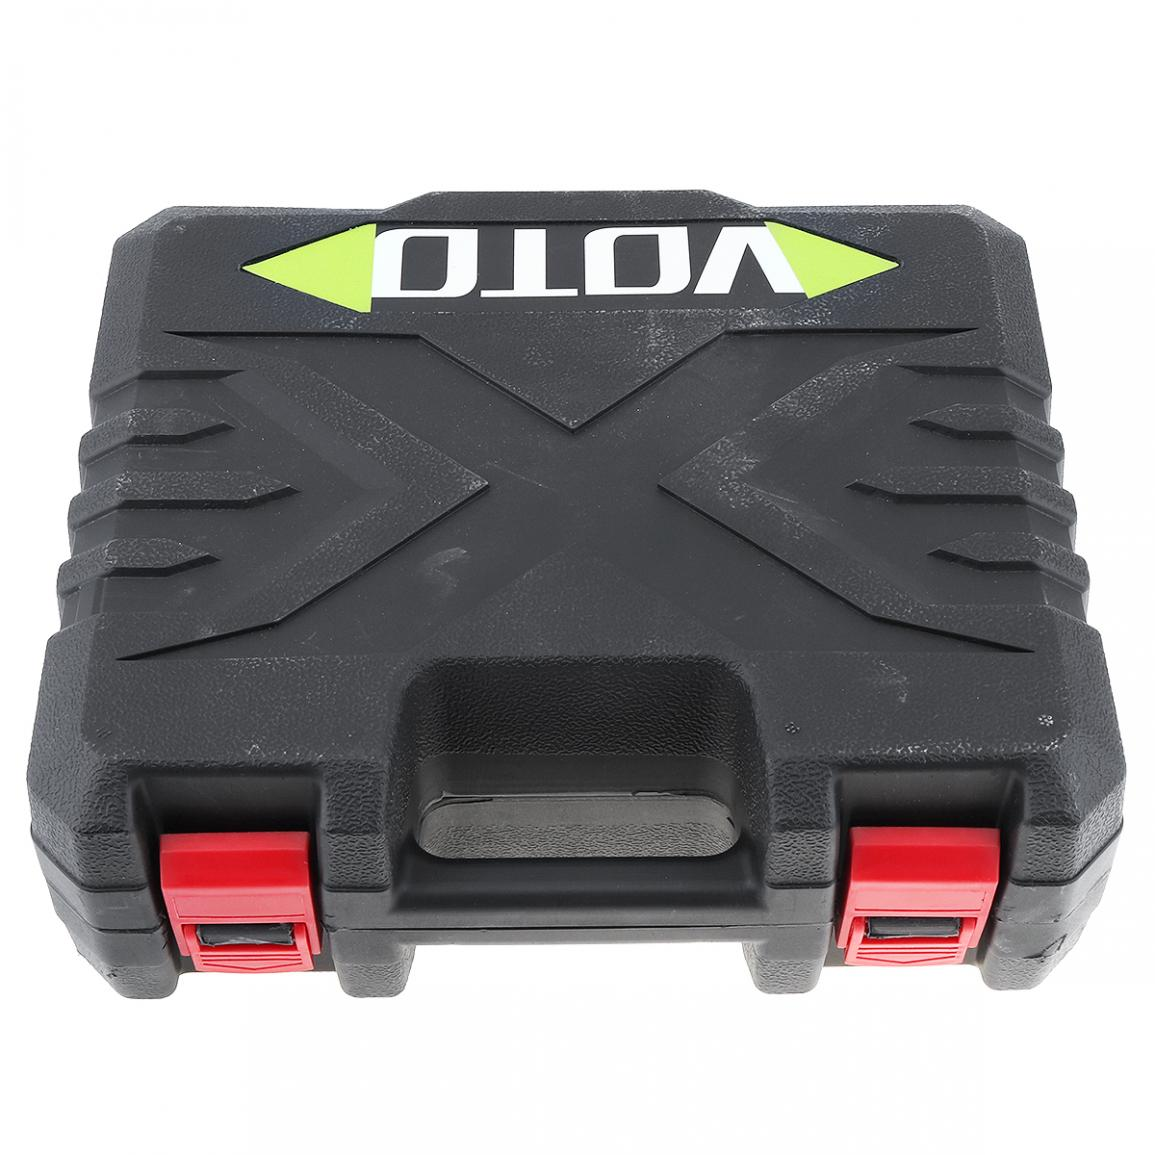 Image 3 - VOTO Power Tool Suitcase 21V Dedicated Tool Box Holder Storage Case with 270mm Length for Lithium Drill Electric Screwdriverpower drill holderpower tool caseelectric drill holder -